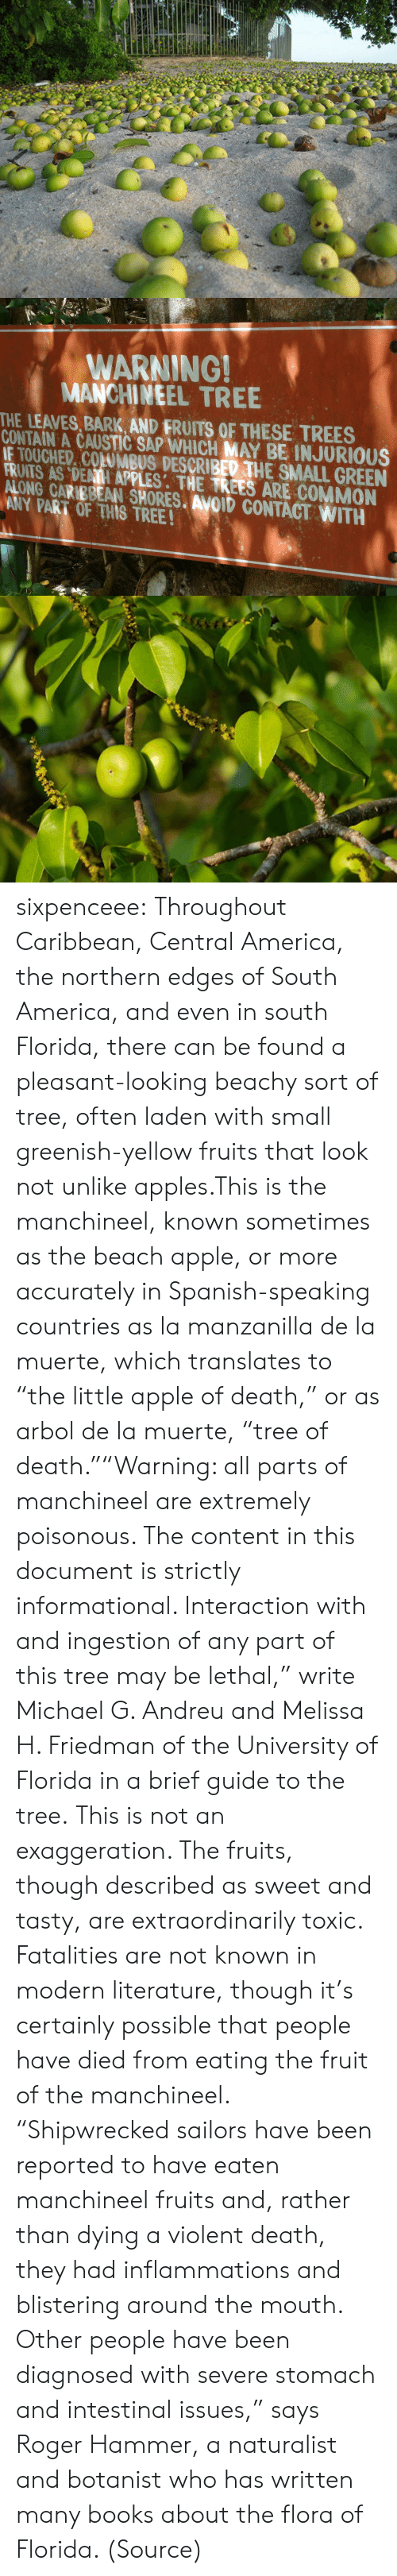 """America, Apple, and Books: WARNING!  MANCHINEEL TREE  THE LEAVES, BARK AND FRUITS OF THESE TREES  CONTAIN A CAUSTIC SAP WHICH MAY BE INJURIOUS  IE TOUCHED. COLUMBUS DESCRIBED THE SMALL GREEN  FRIATS AS DENII APPLES: THE TREES ARE COMMON  ALONG CARIBBEAN SHORES. AVOID CONTACT WITH  ANY PART OF THIS TREE! sixpenceee:  Throughout Caribbean, Central America, the northern edges of South America, and even in south Florida, there can be found a pleasant-looking beachy sort of tree, often laden with small greenish-yellow fruits that look not unlike apples.This is the manchineel, known sometimes as the beach apple, or more accurately in Spanish-speaking countries as la manzanilla de la muerte, which translates to """"the little apple of death,"""" or as arbol de la muerte, """"tree of death.""""""""Warning: all parts of manchineel are extremely poisonous. The content in this document is strictly informational. Interaction with and ingestion of any part of this tree may be lethal,"""" write Michael G. Andreu and Melissa H. Friedman of the University of Florida in a brief guide to the tree.This is not an exaggeration. The fruits, though described as sweet and tasty, are extraordinarily toxic. Fatalities are not known in modern literature, though it's certainly possible that people have died from eating the fruit of the manchineel. """"Shipwrecked sailors have been reported to have eaten manchineel fruits and, rather than dying a violent death, they had inflammations and blistering around the mouth. Other people have been diagnosed with severe stomach and intestinal issues,"""" says Roger Hammer, a naturalist and botanist who has written many books about the flora of Florida. (Source)"""